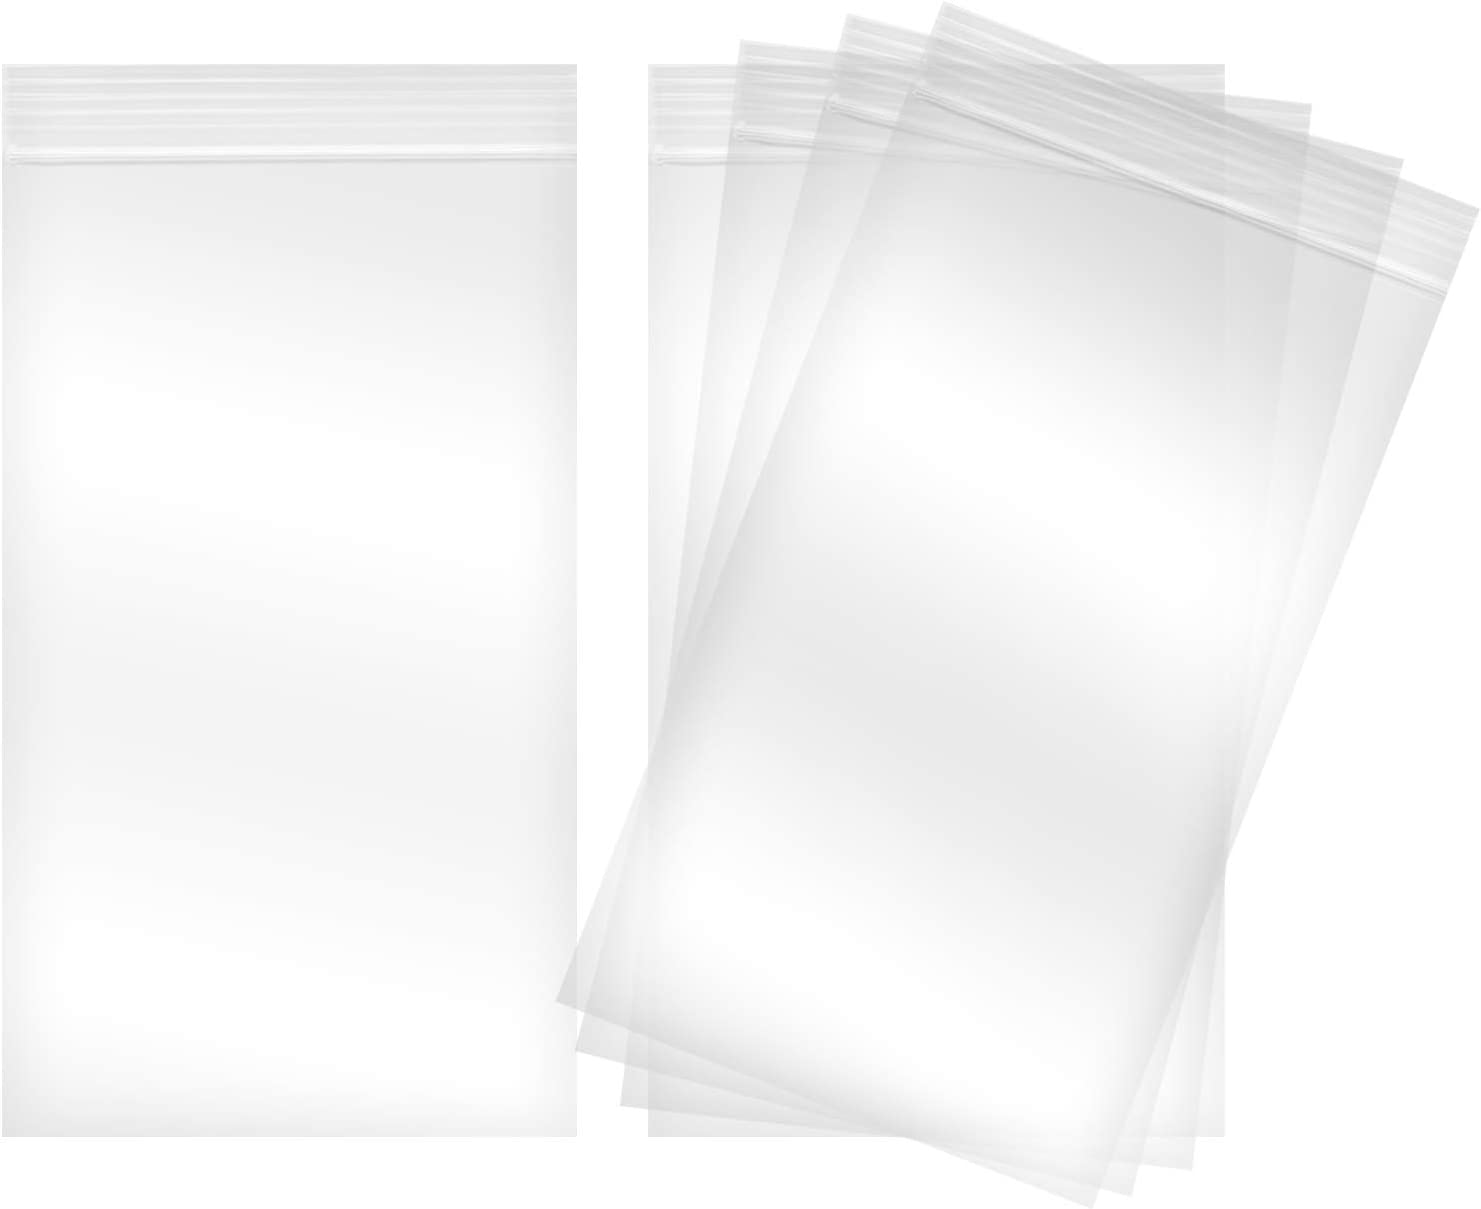 Reclosable Clear Plastic Zip Bags - by DiRose | Resealable, Strong, Thick, Sturdy, Food Safe | for Organizing, Travel, Shipping, Packaging, and Storage | 2x3 | 100 Pack